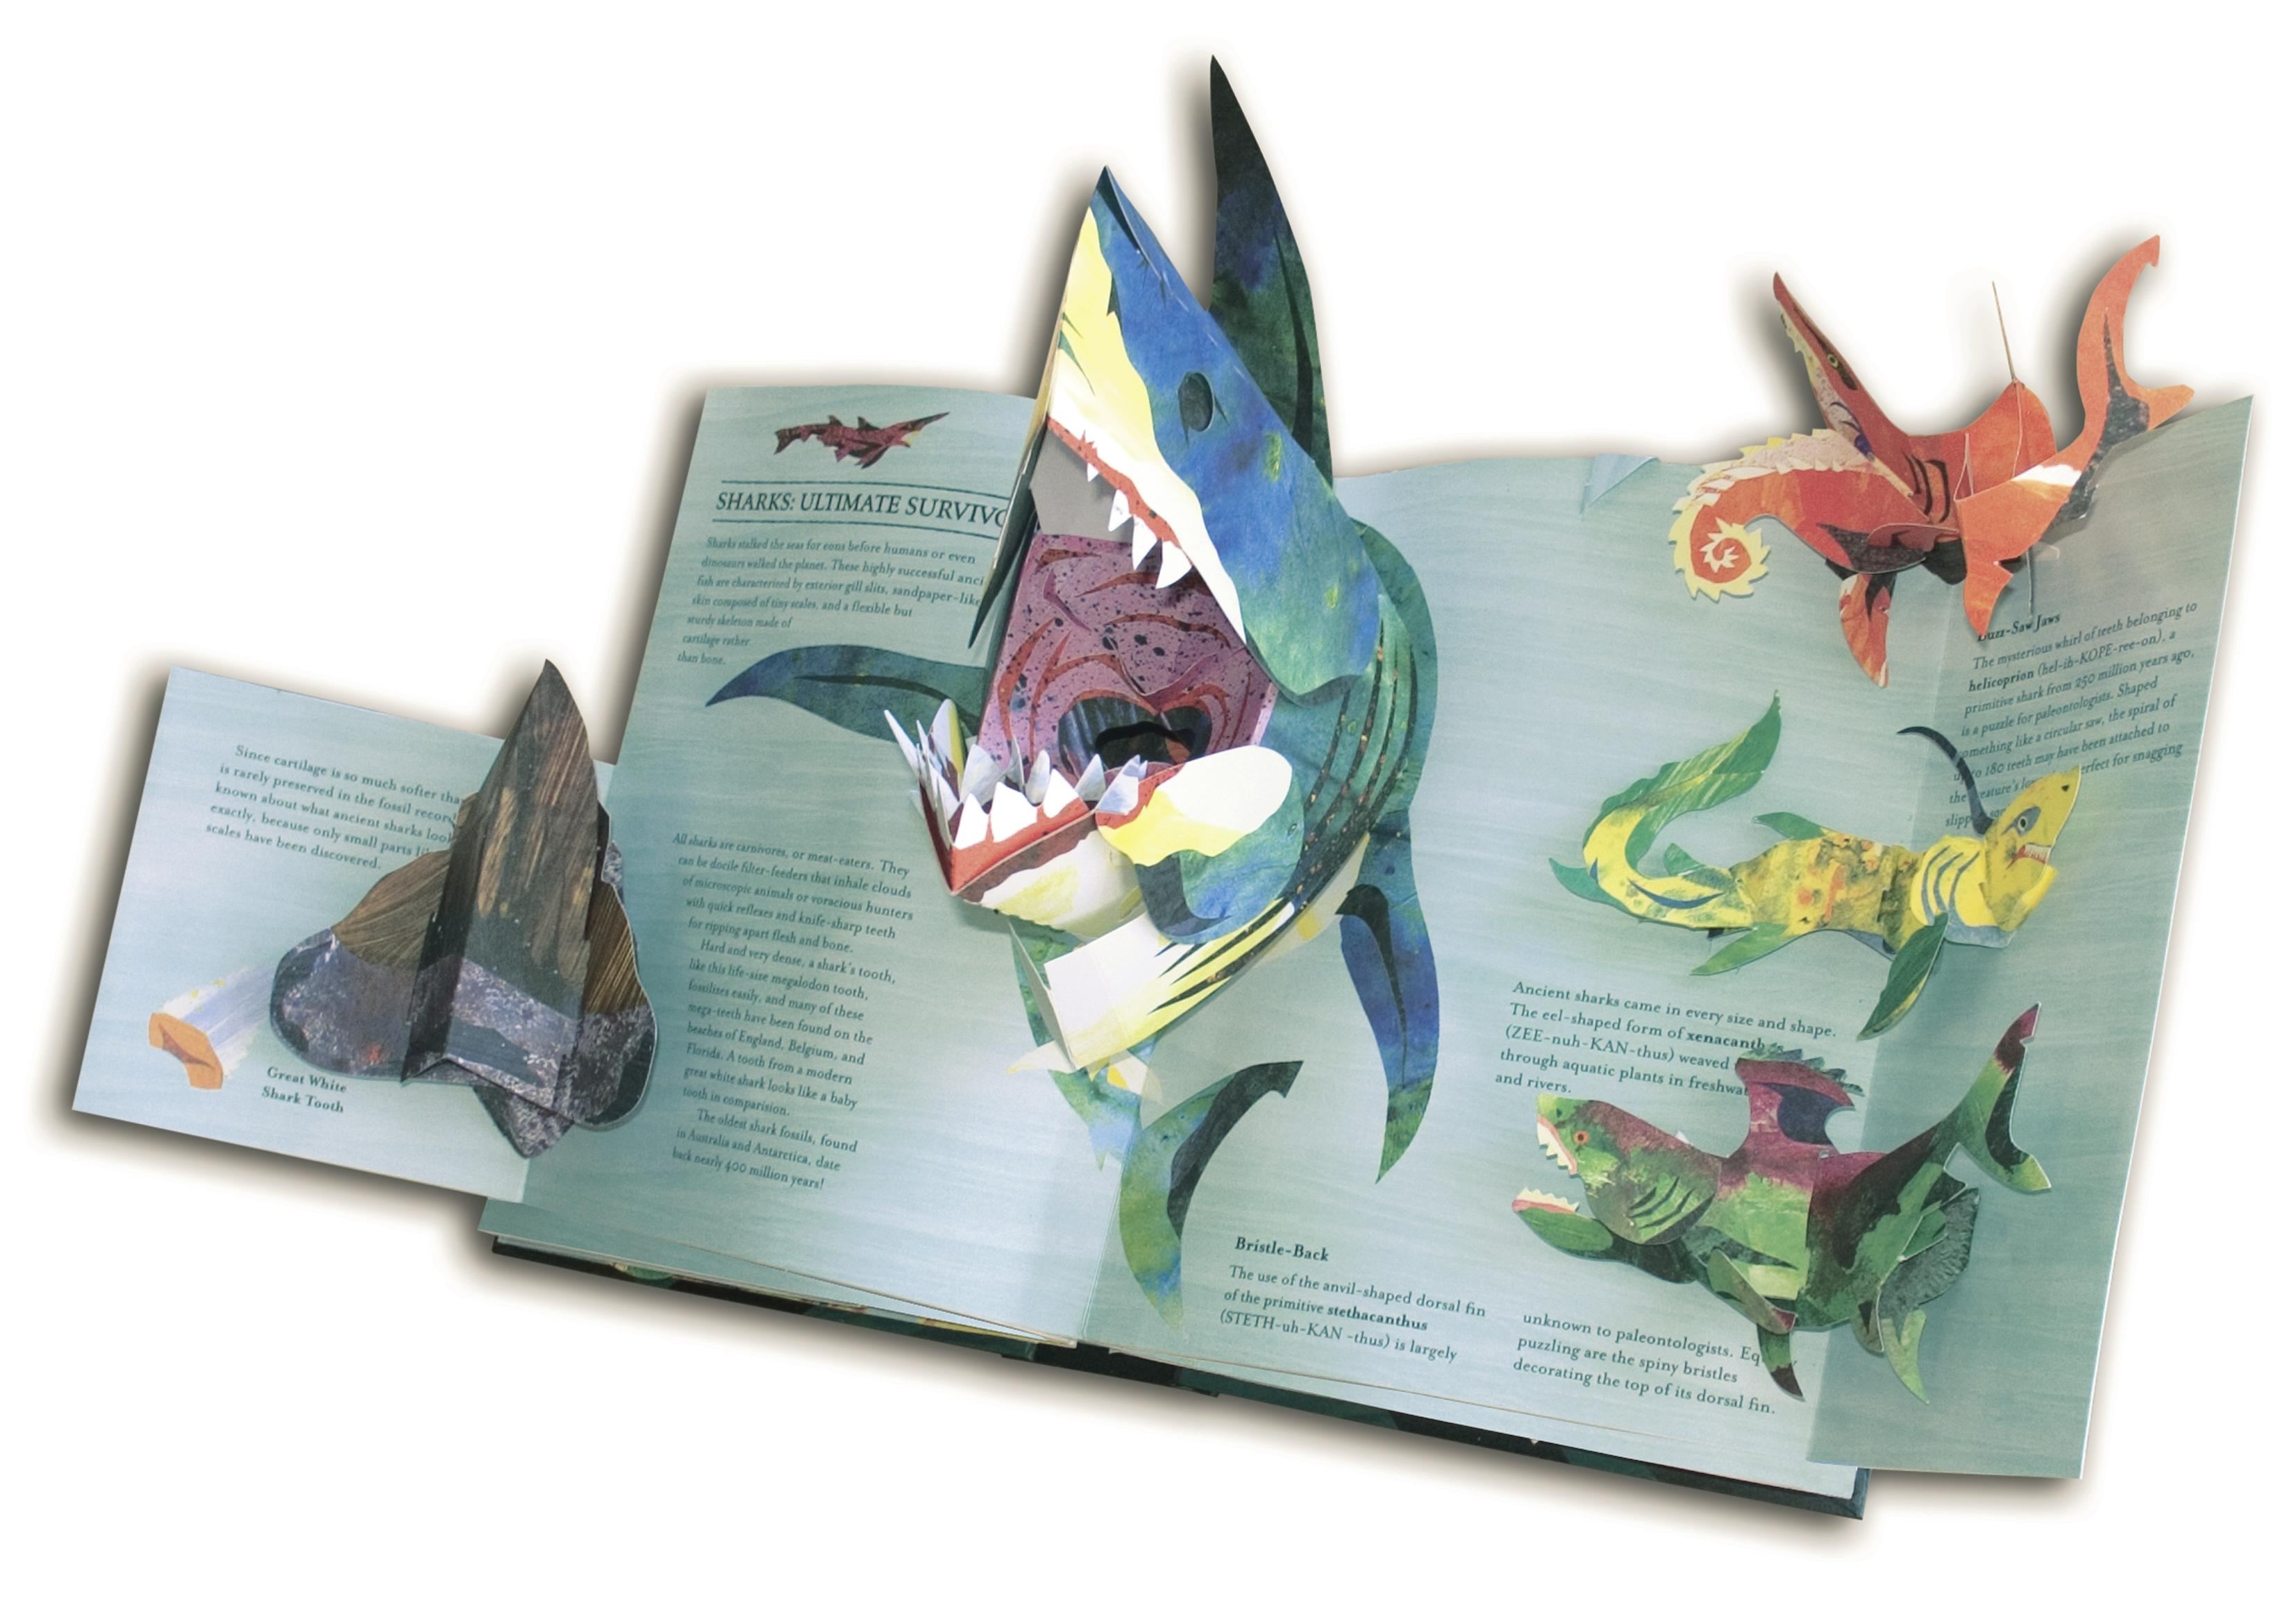 Encyclopedia Prehistorica Sharks And Other Sea Monsters Robert Origami Dinosaur Diagrams Claudia39s Room Pinterest From The Publisher